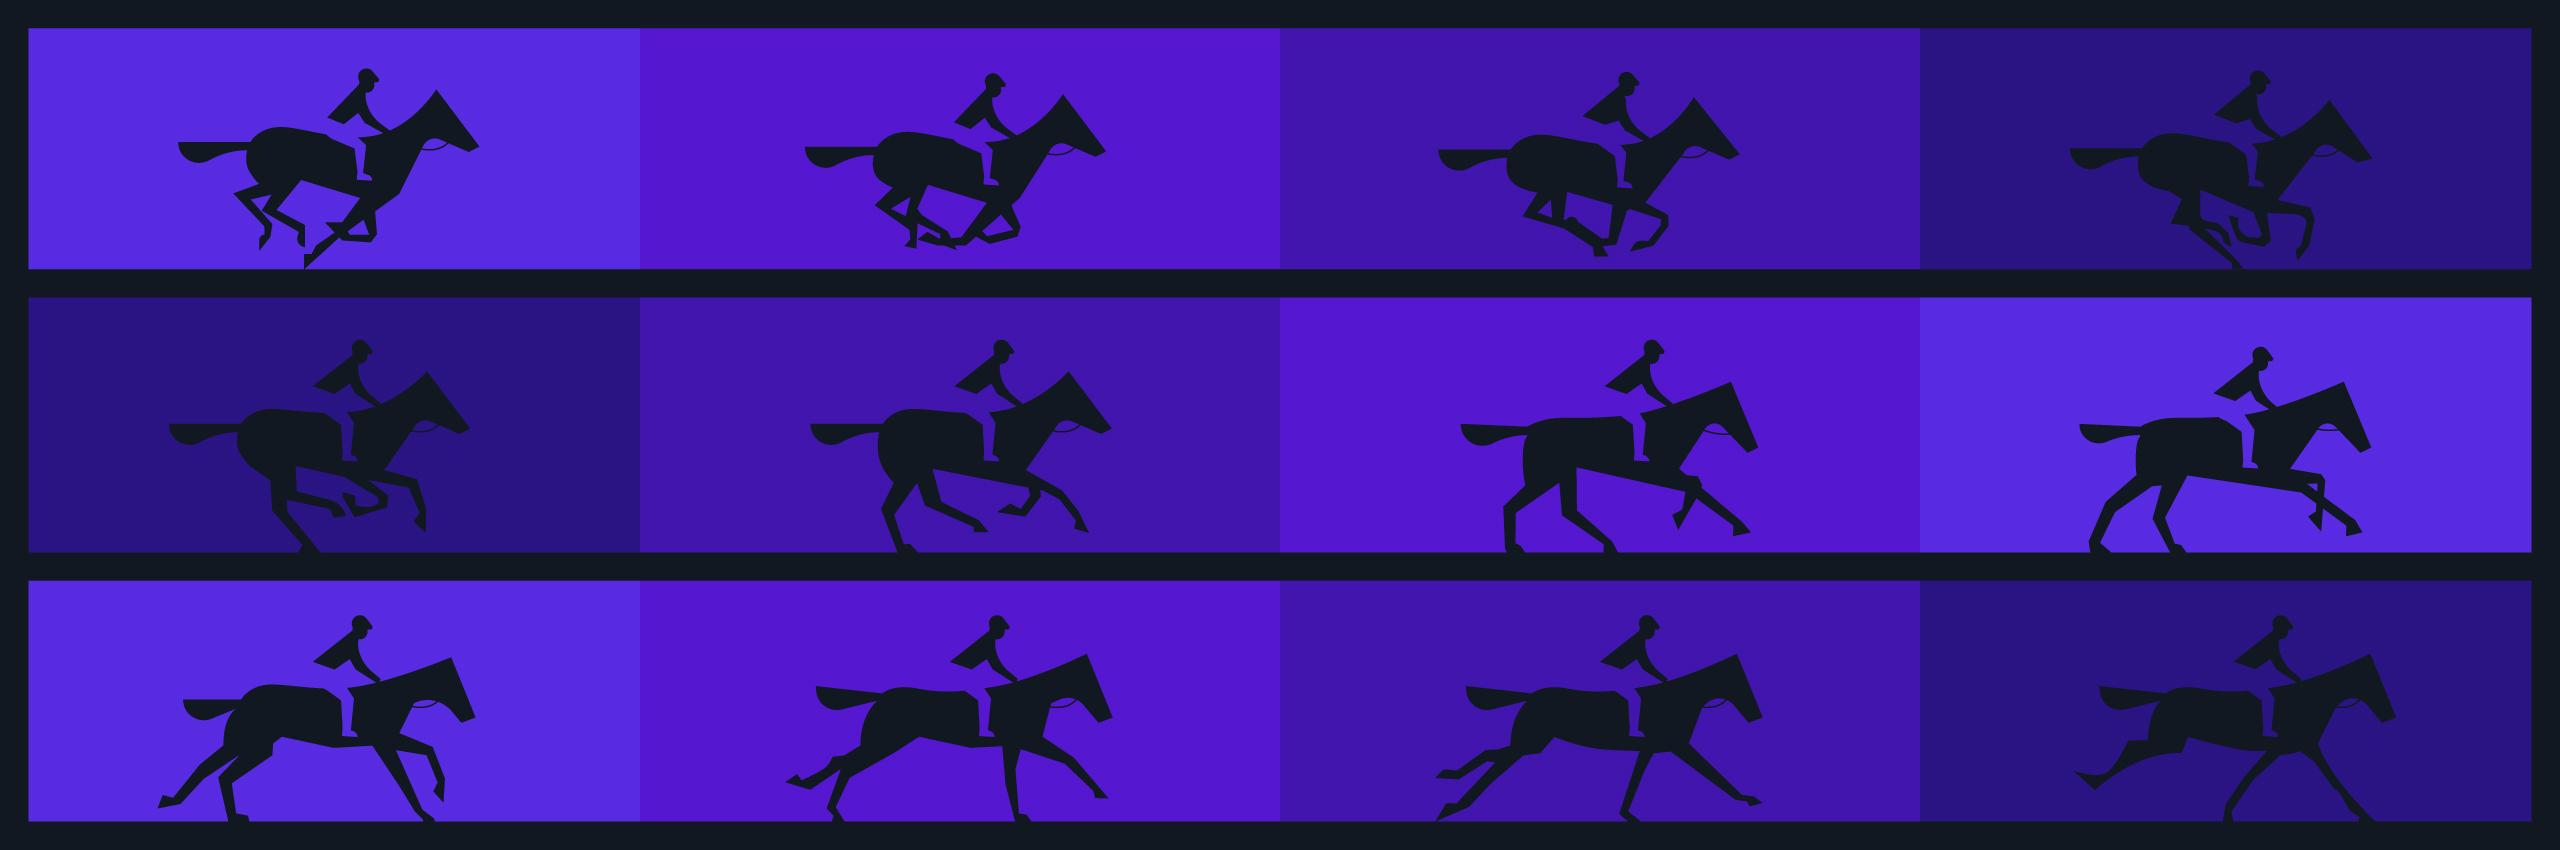 Muybridge horses in motion